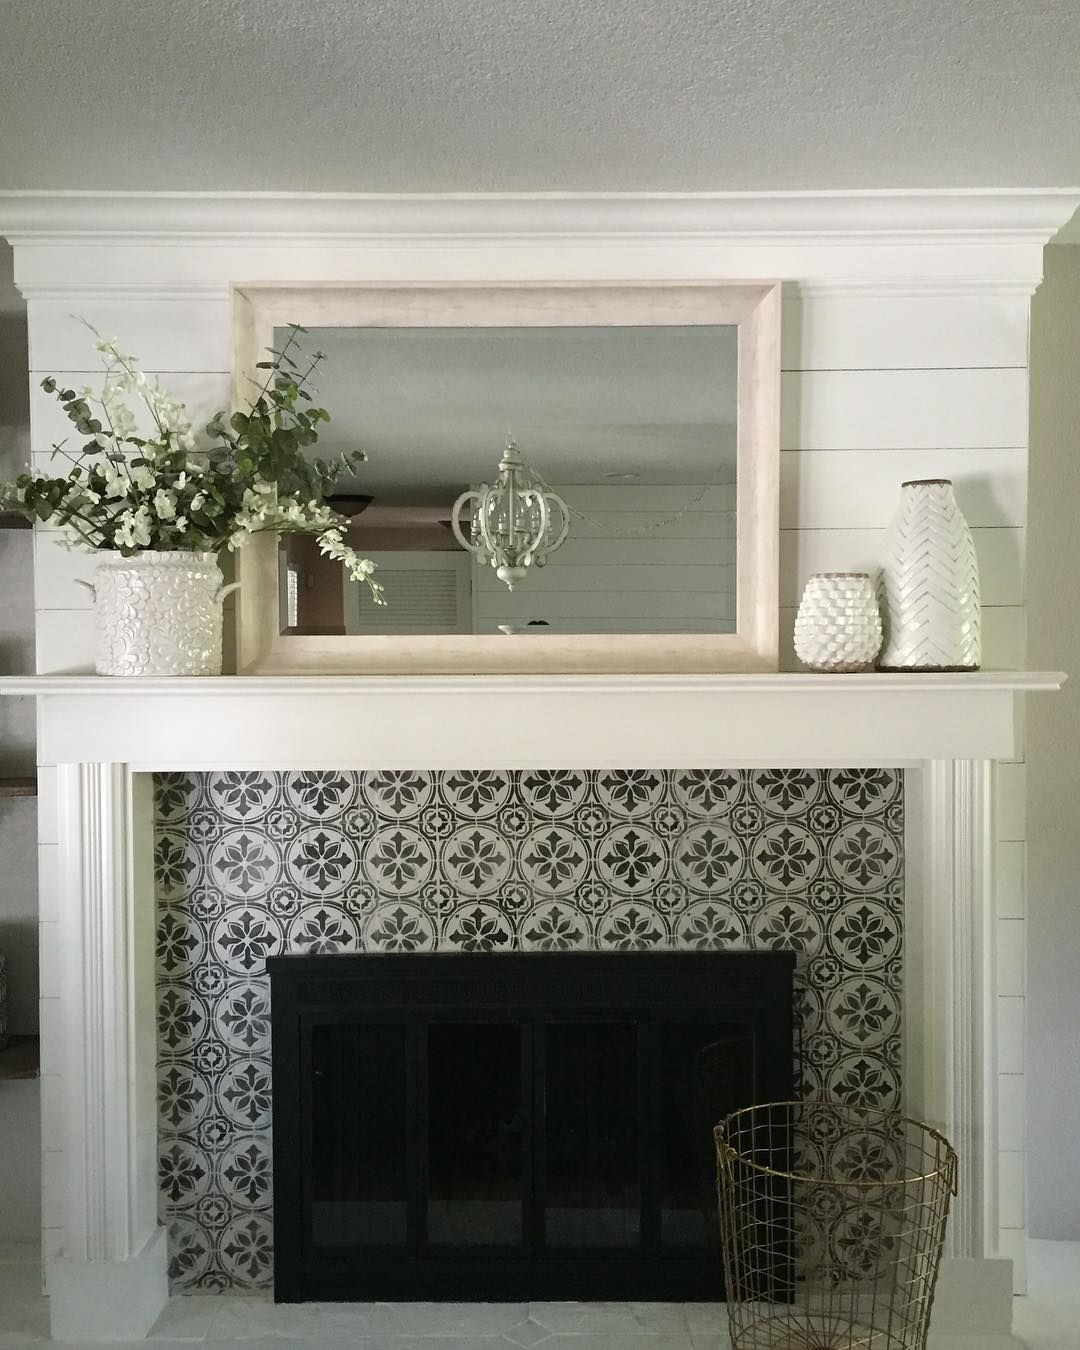 a diy stenciled fireplace surround using the abbey tile stencil